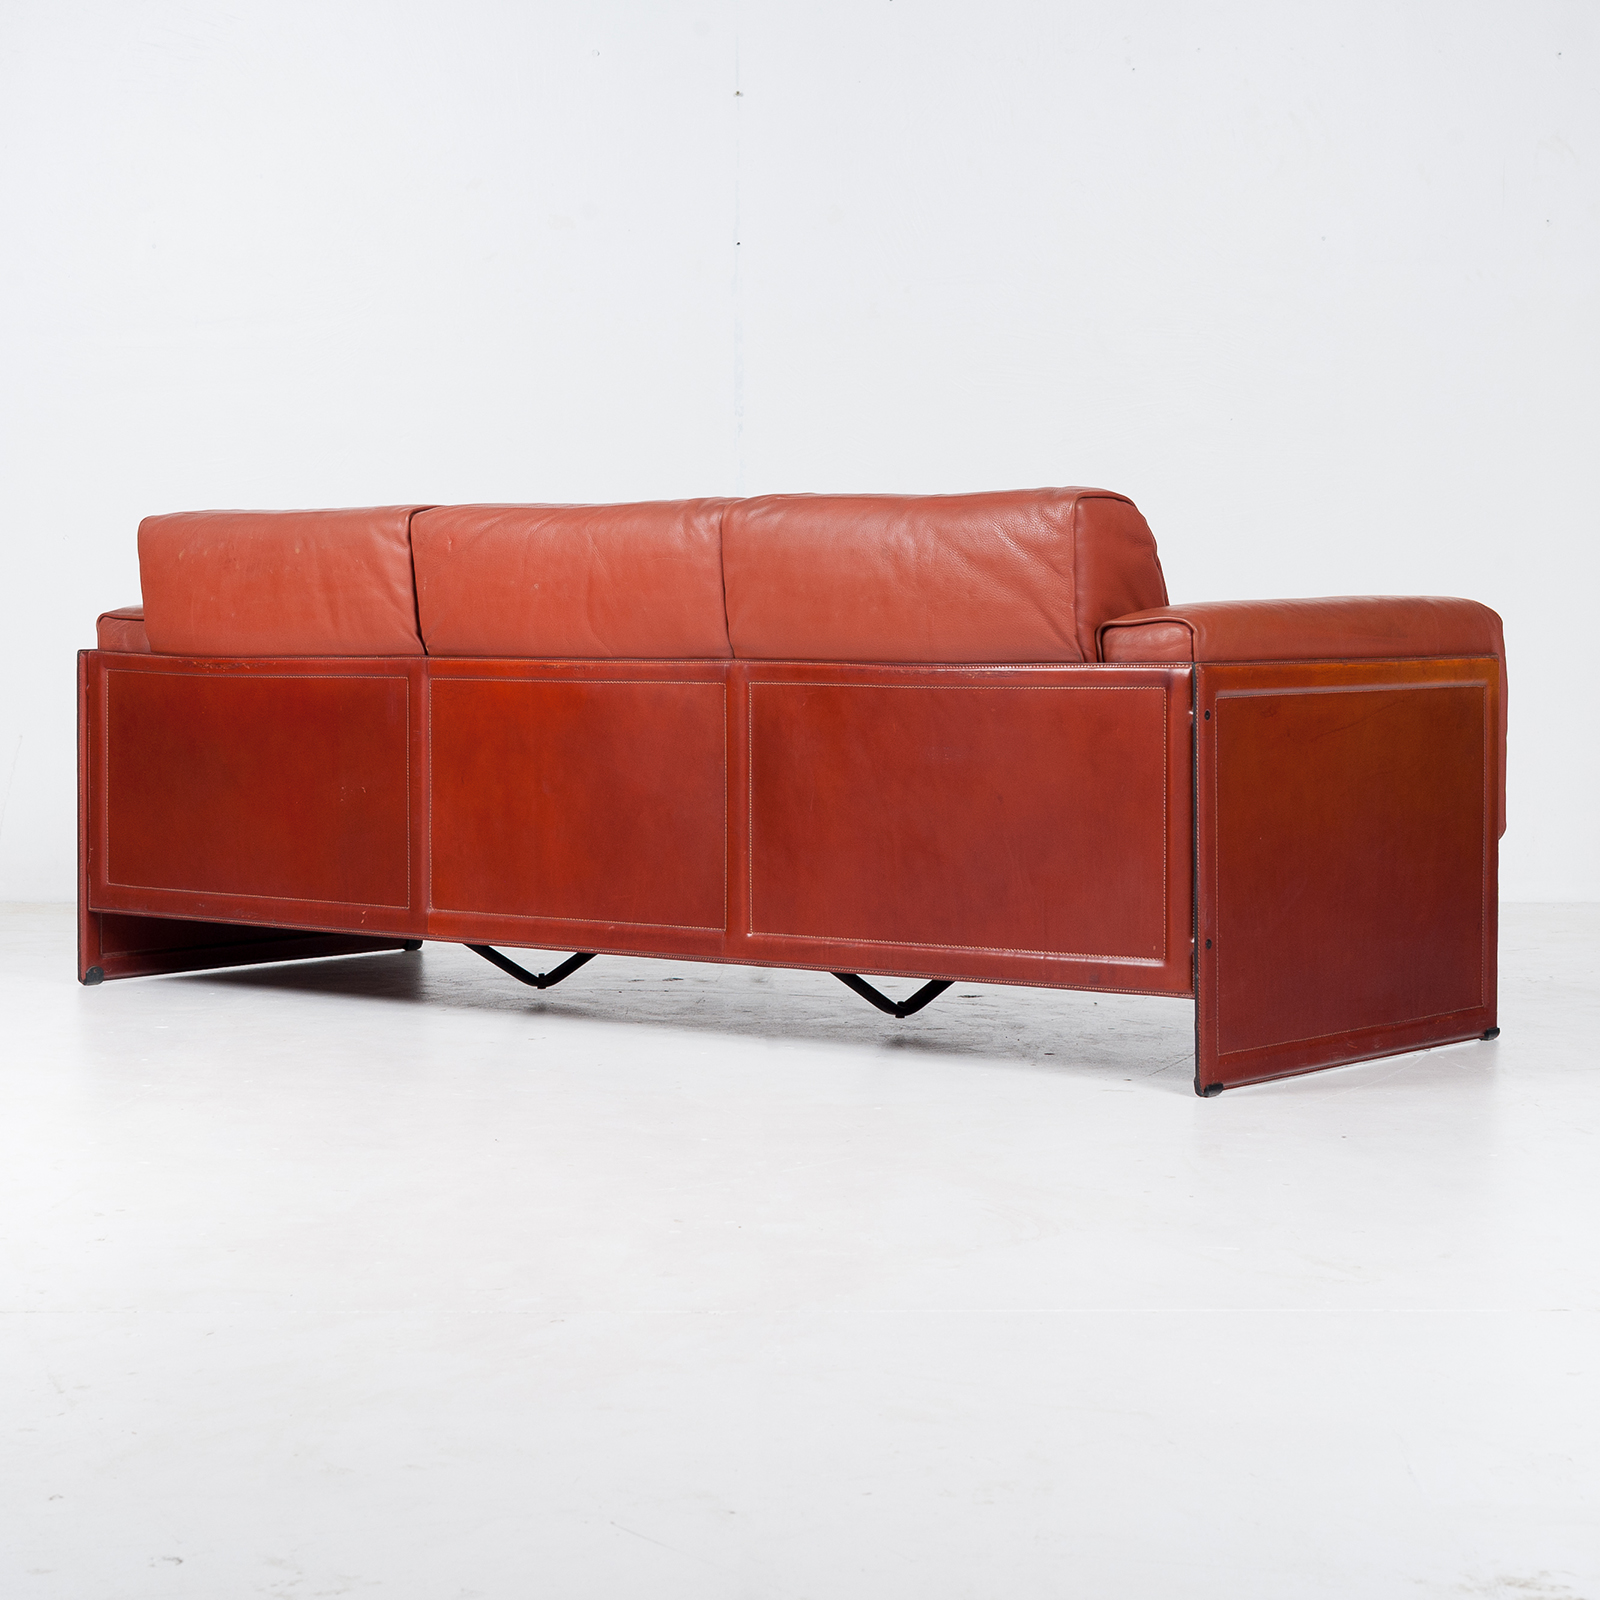 3 Seat Sofa In Leather By Matteo Grassi, 1980s, Italy59